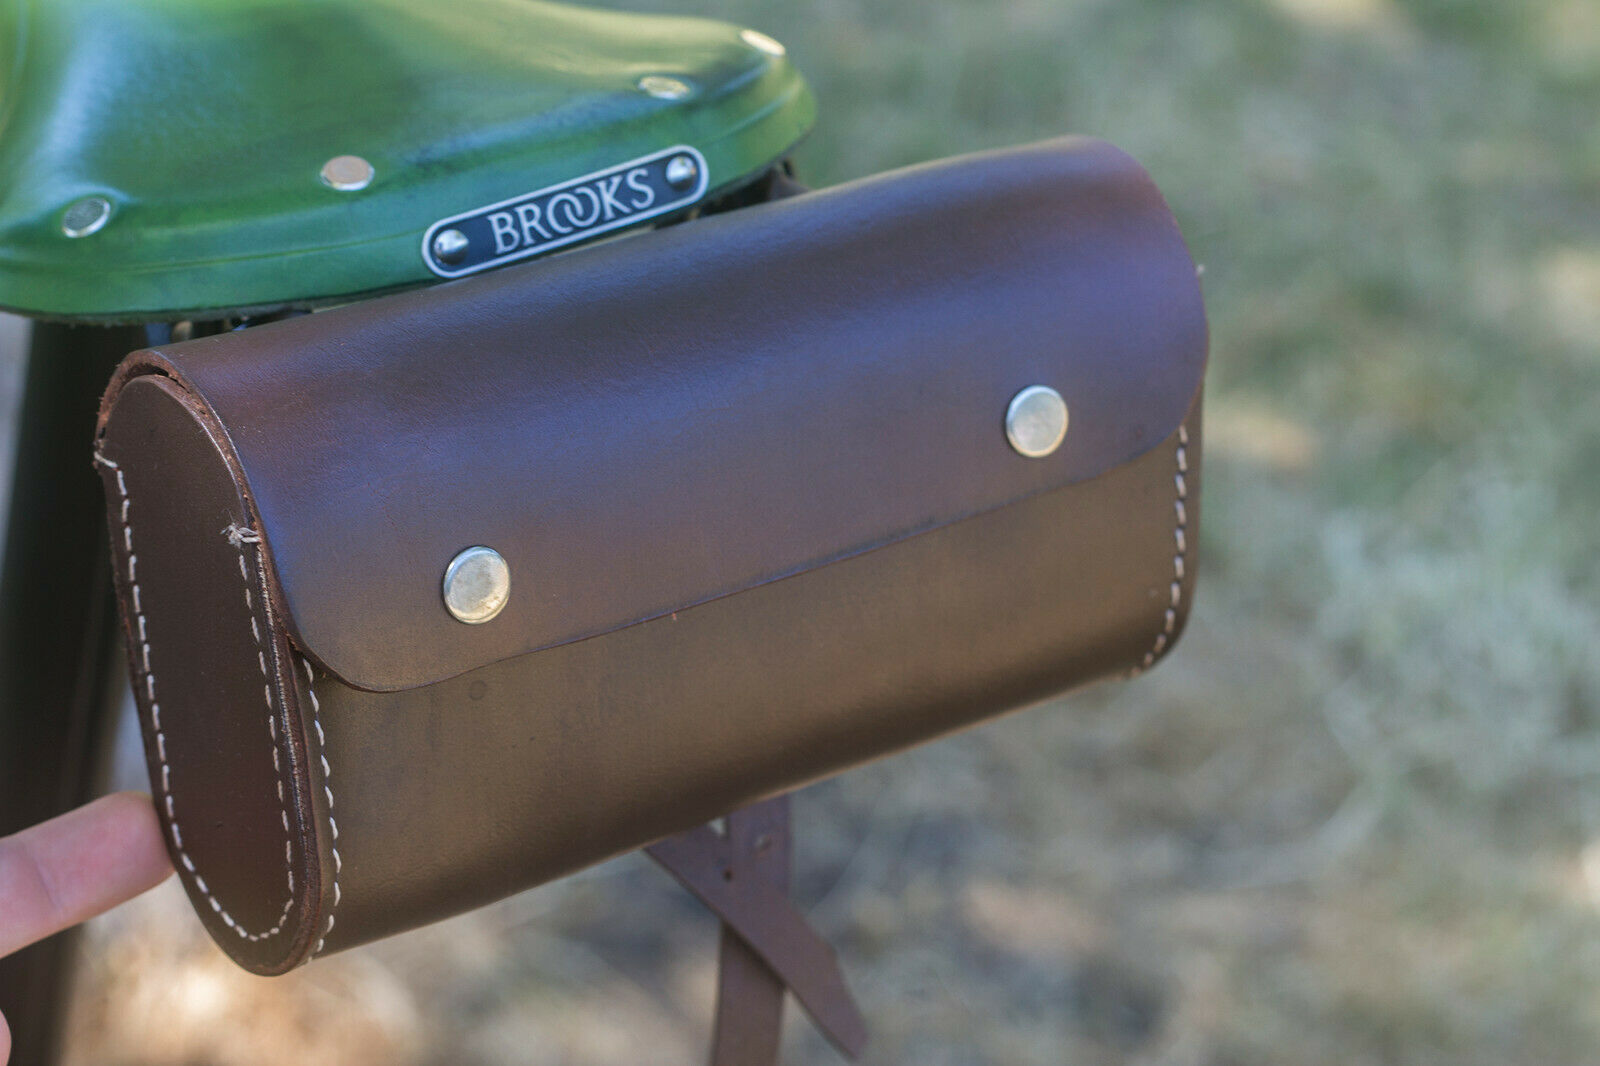 Leather  Saddle Bag For Bike BROWN Limited Edition by London Craftwork  low-key luxury connotation